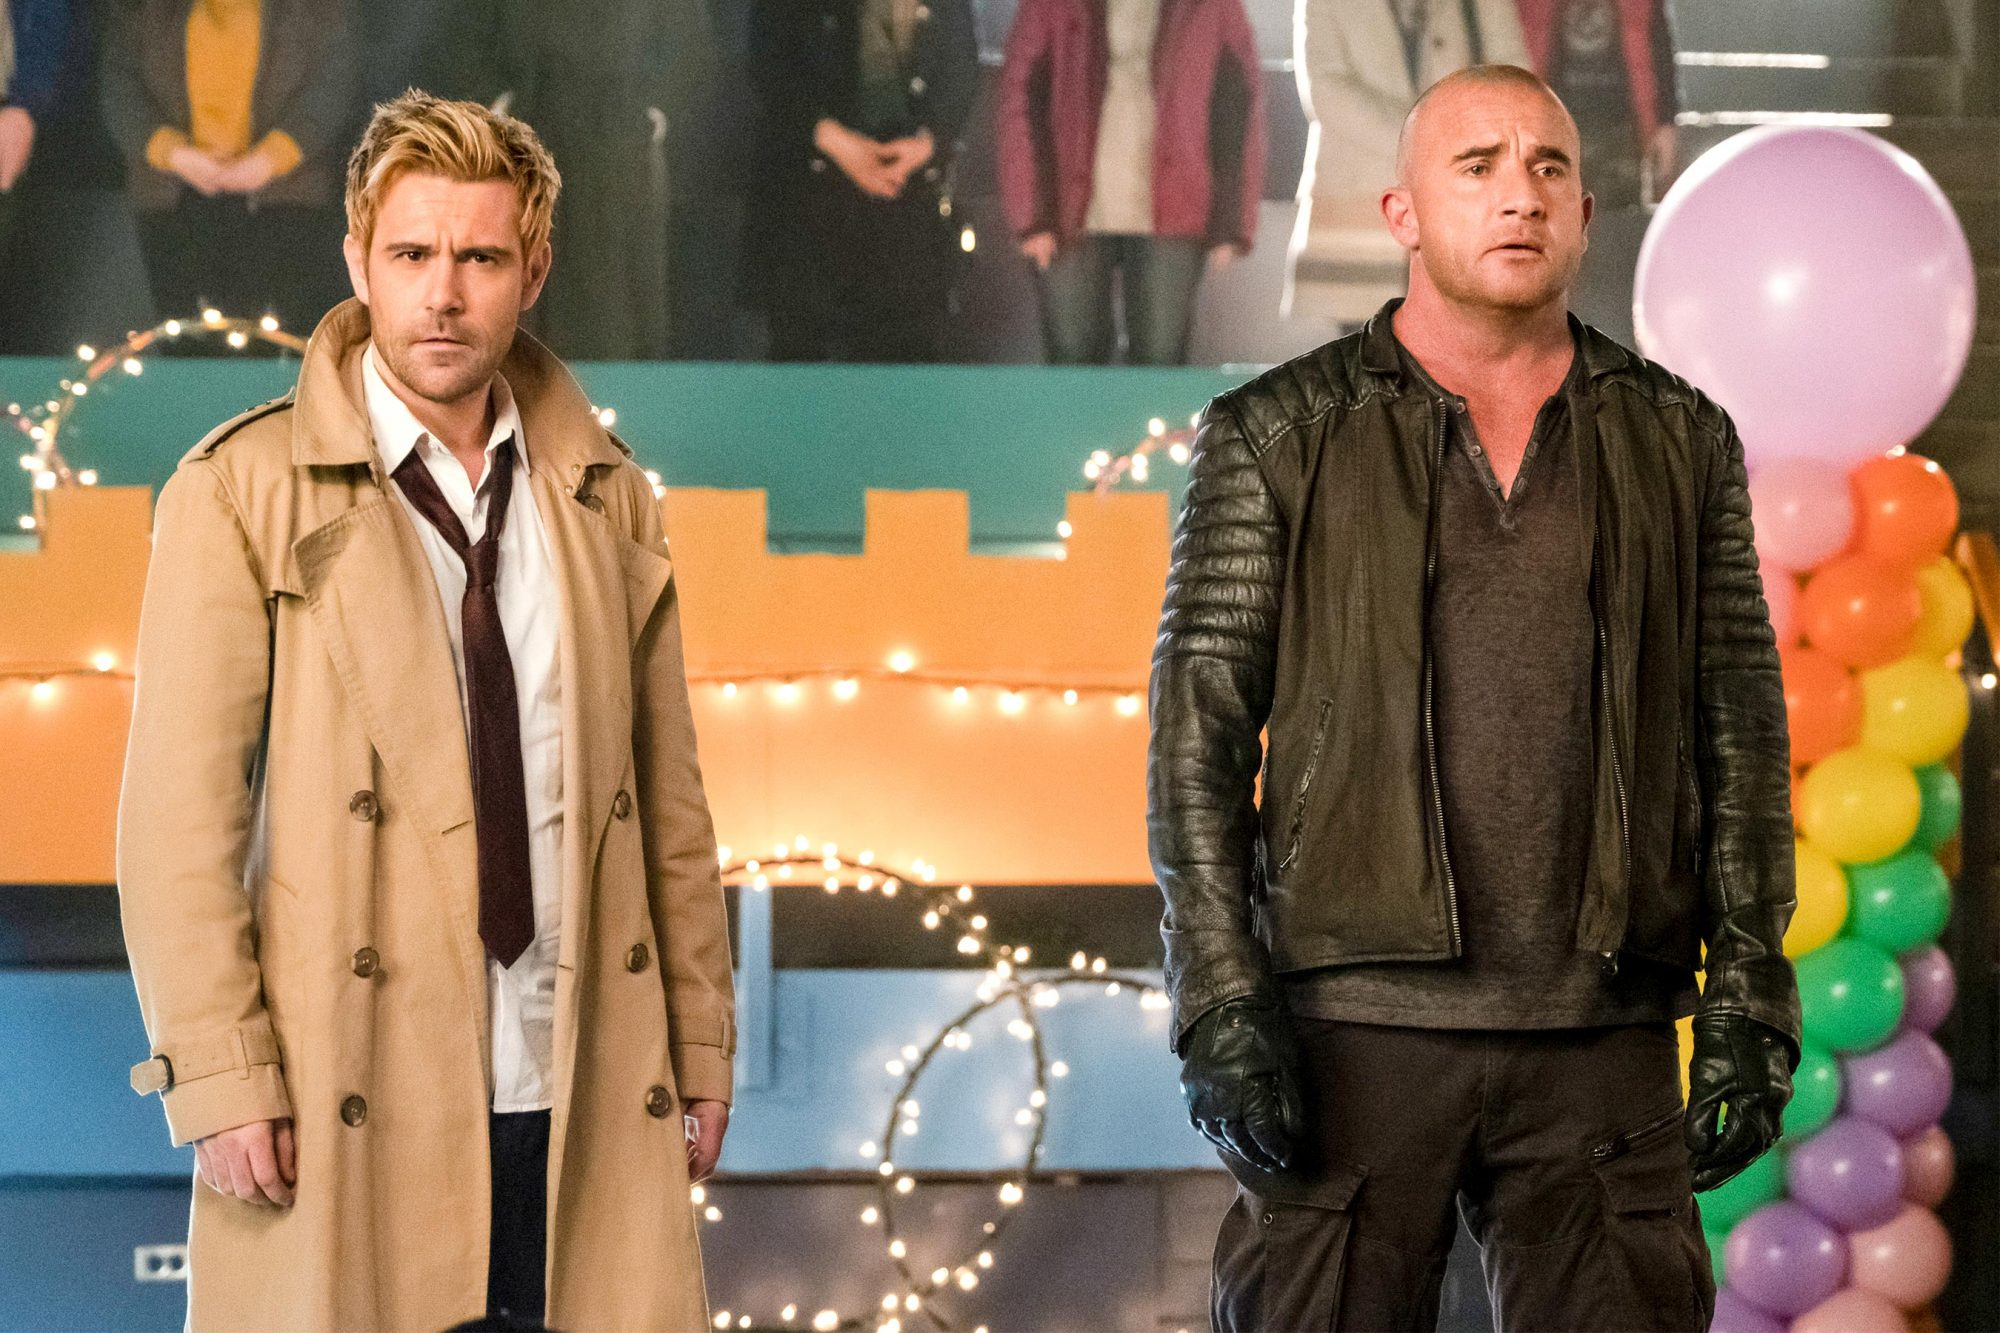 "DC's Legends of Tomorrow -- ""Hey World!"" -- Image Number: LGN416b_0194b.jpg -- Pictured (L-R): Matt Ryan as Constantine and Dominic Purcell as Mick Rory/Heatwave -- Photo: Katie Yu/The CW -- © 2019 The CW Network, LLC. All Rights Reserved."